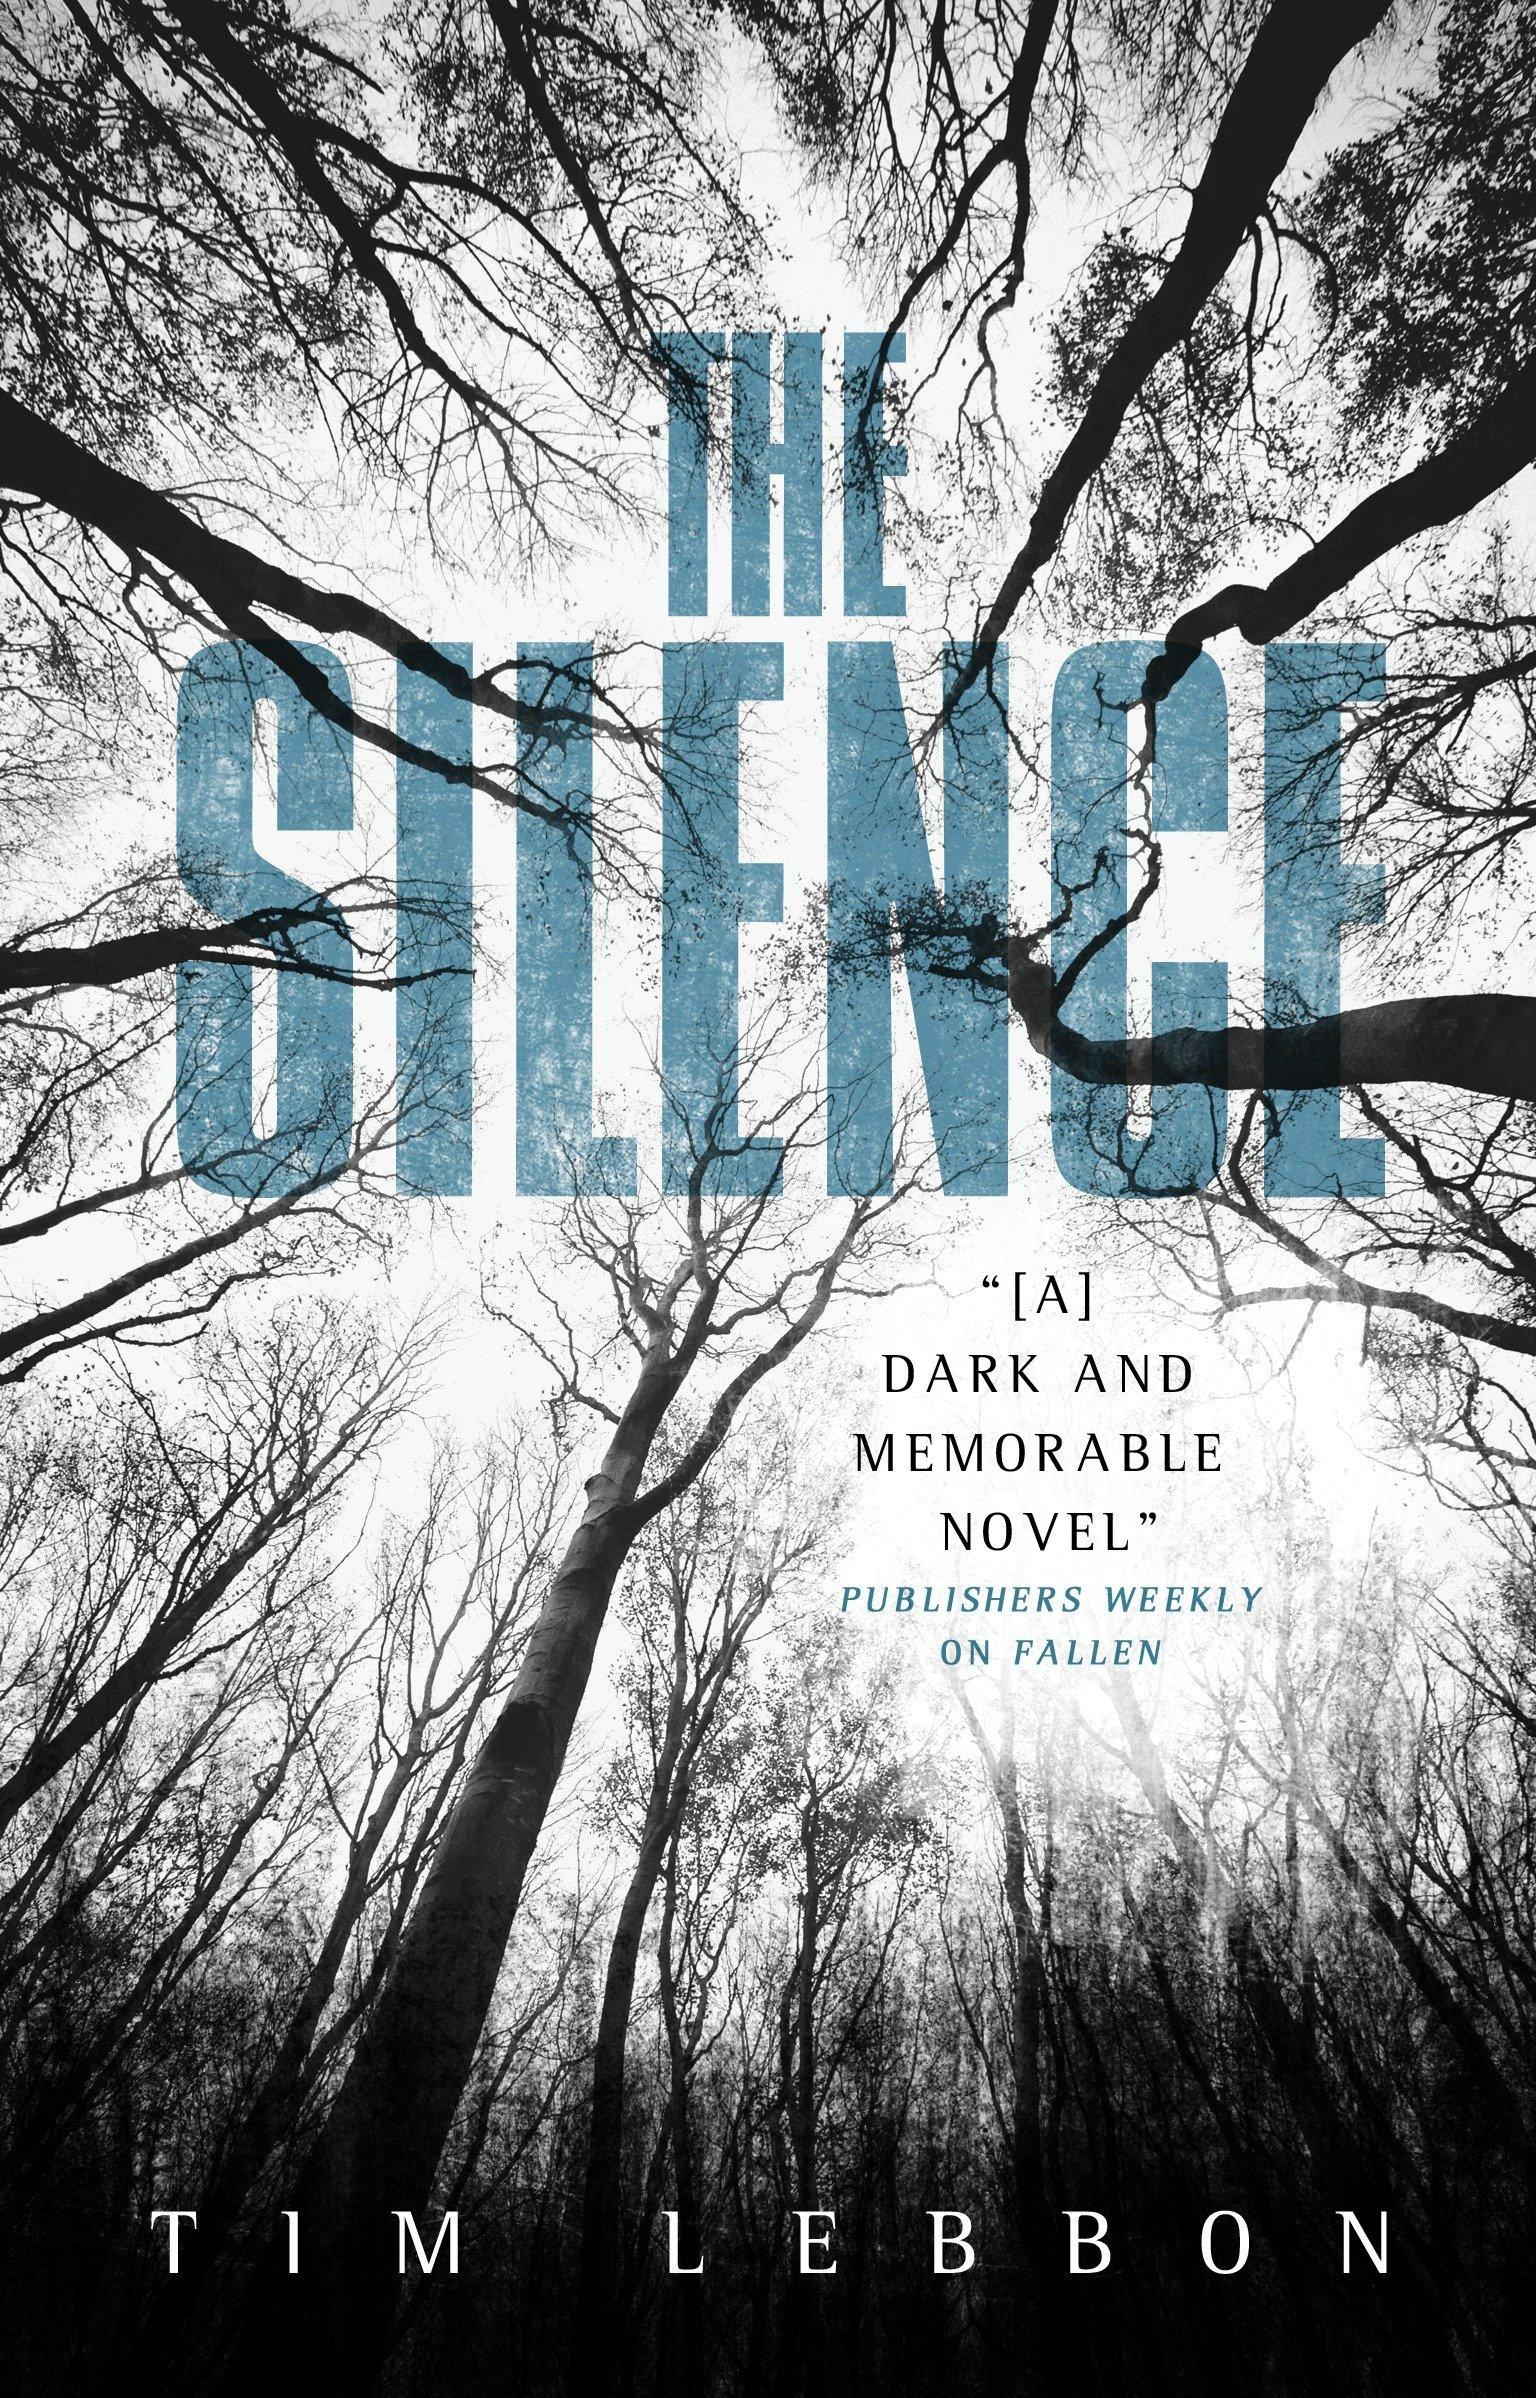 Image result for the silence book cover